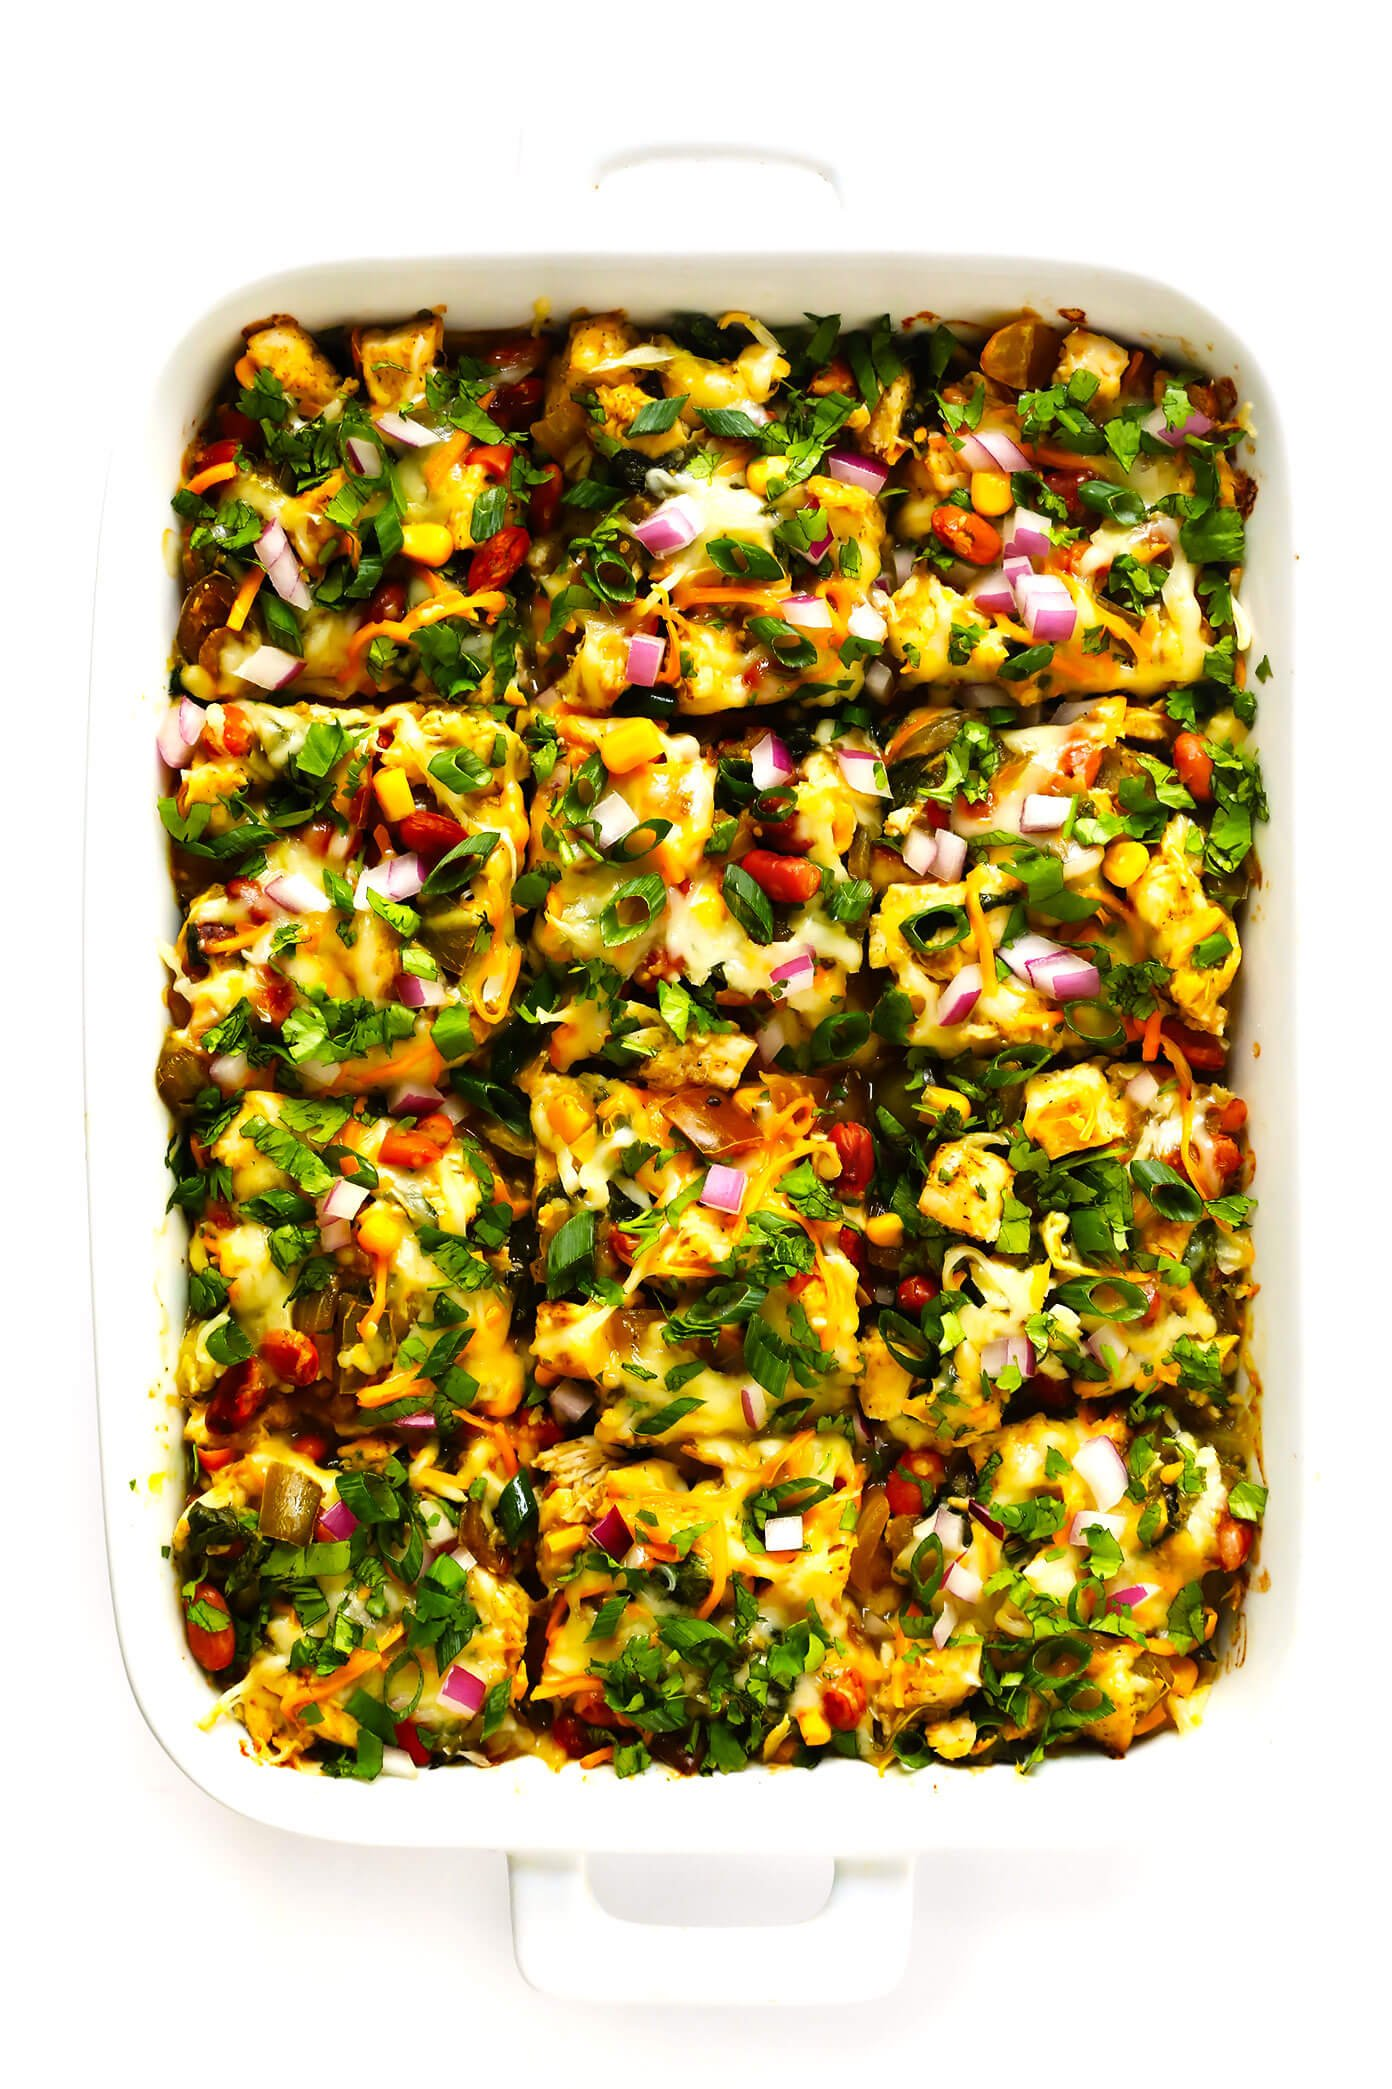 Green Chicken Enchilada Casserole Recipe